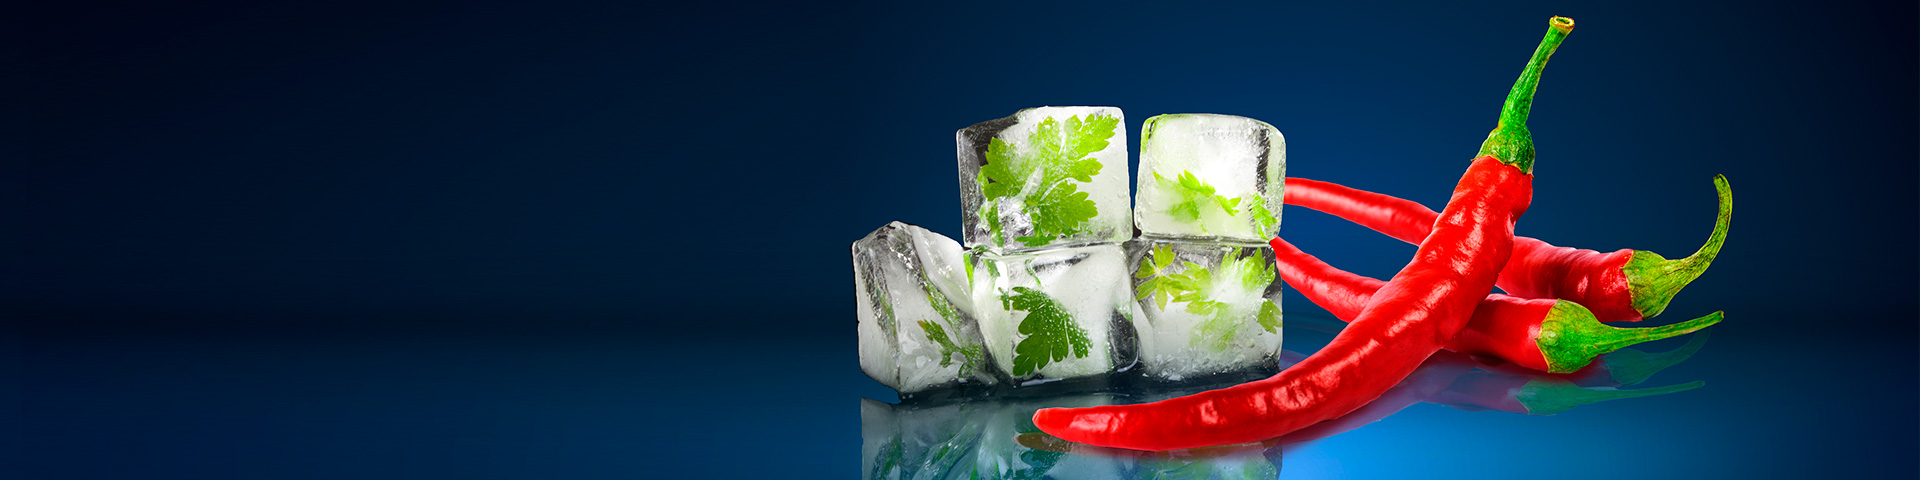 header ice chilli 1920x480